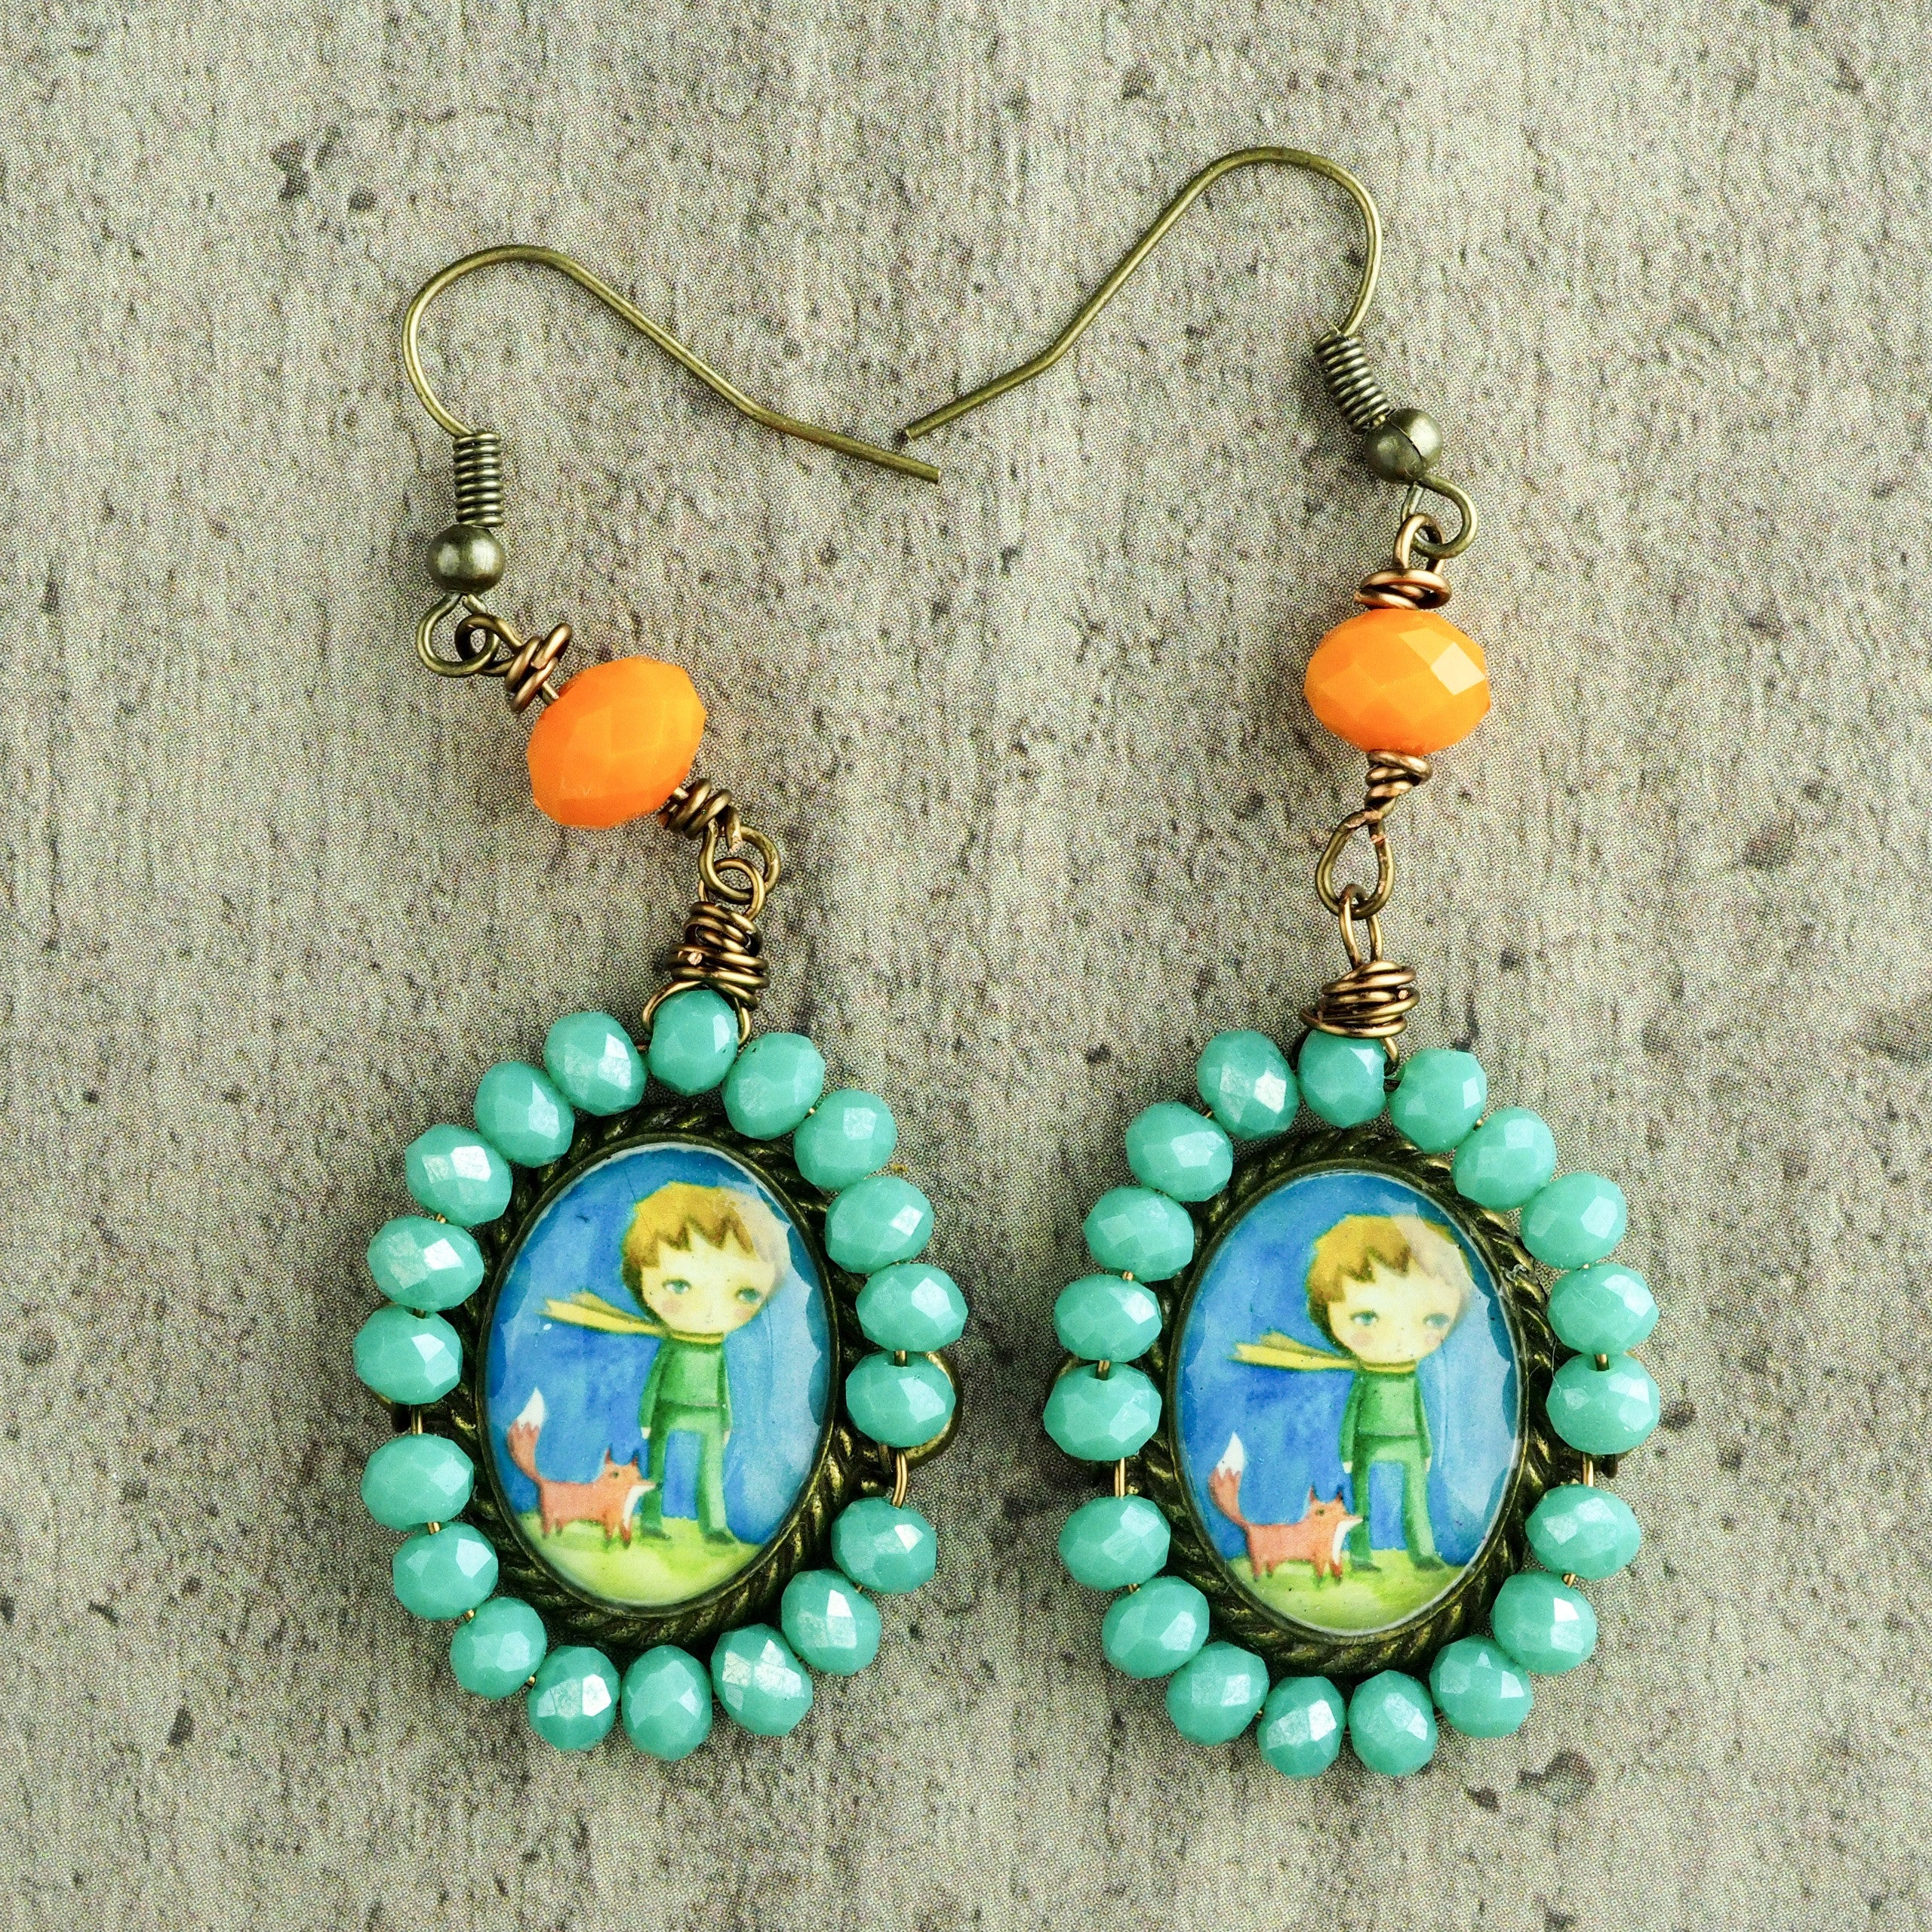 Original one of a kind earrings by Danita. The little prince is painted in the whimsical and surrreal style of Danita. One of a kind original accessories and wearable art.